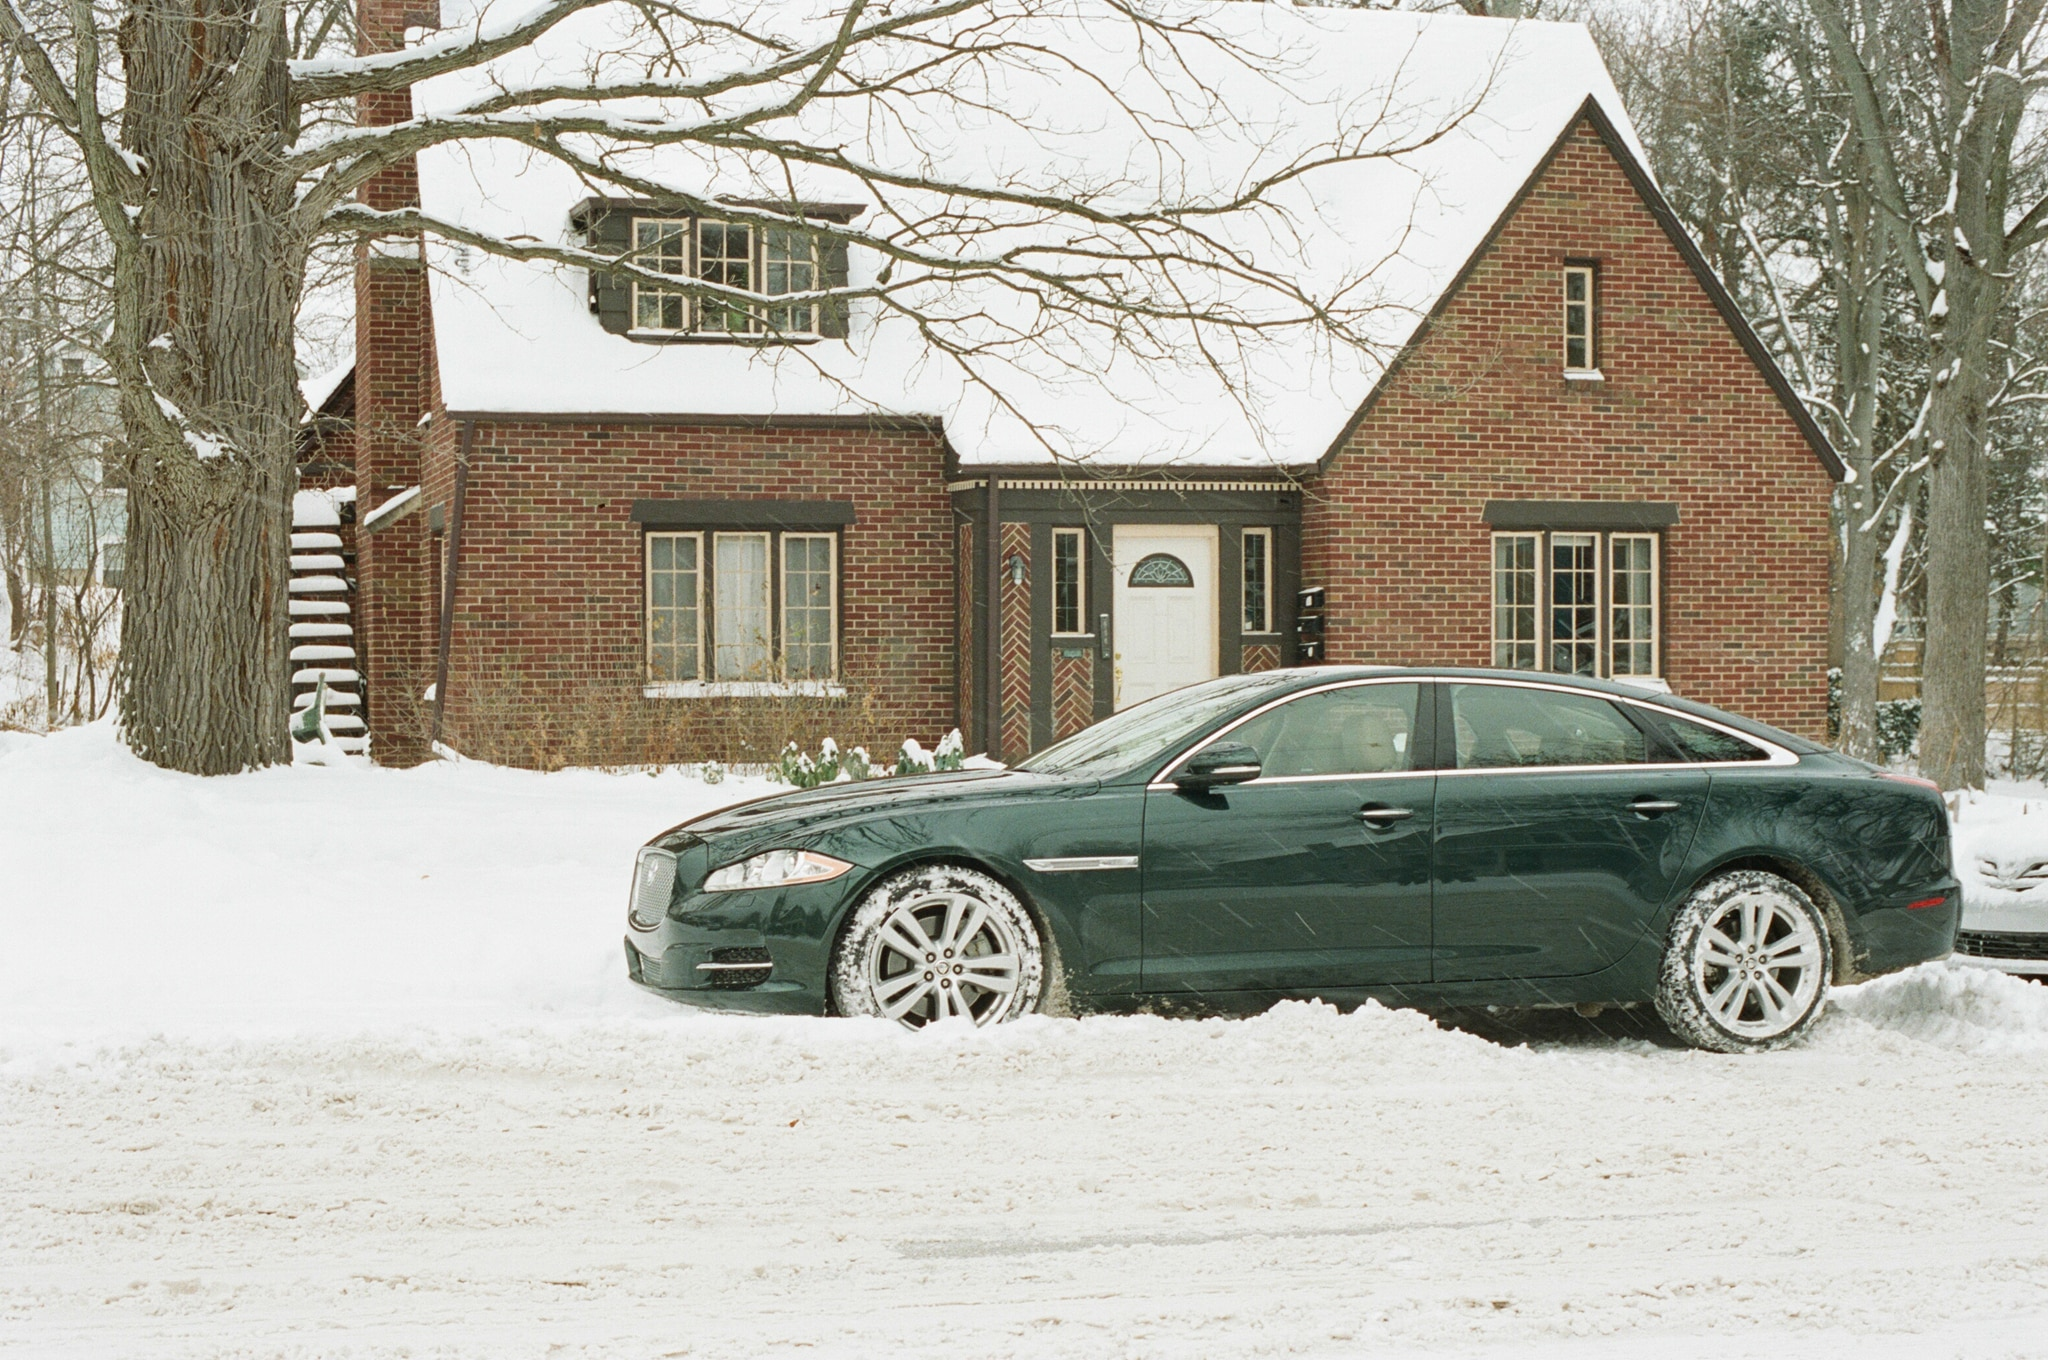 2013 Jaguar Xjl Profile Snow1